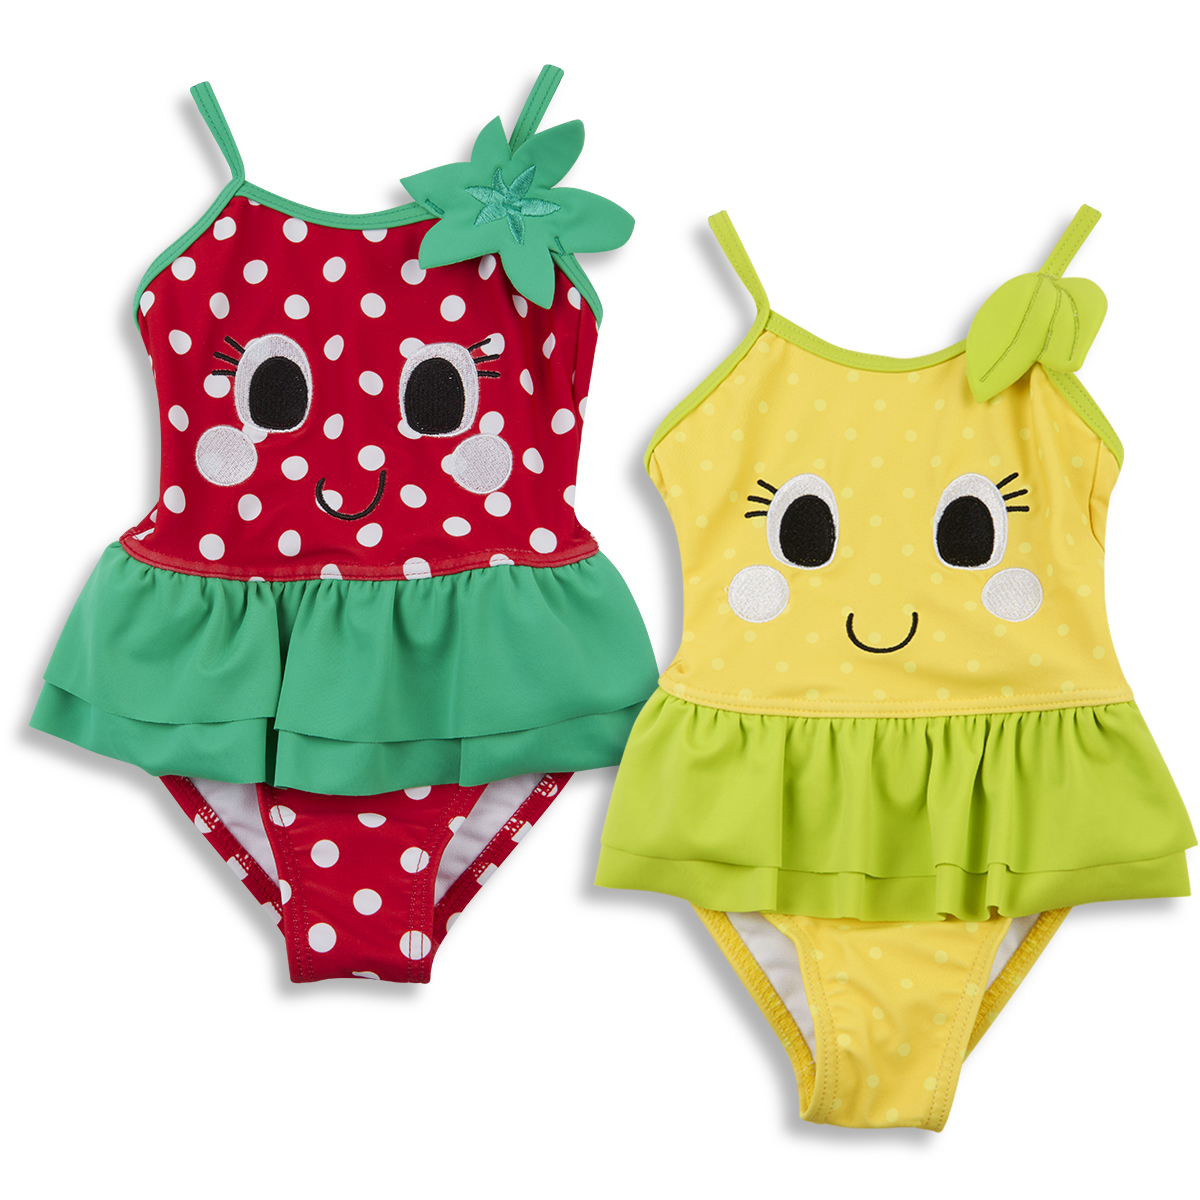 b70d193a0 Baby Babies Girls Novelty Fruit Swimming Costume Swim Suit 3-24 Months  BABYTOWN